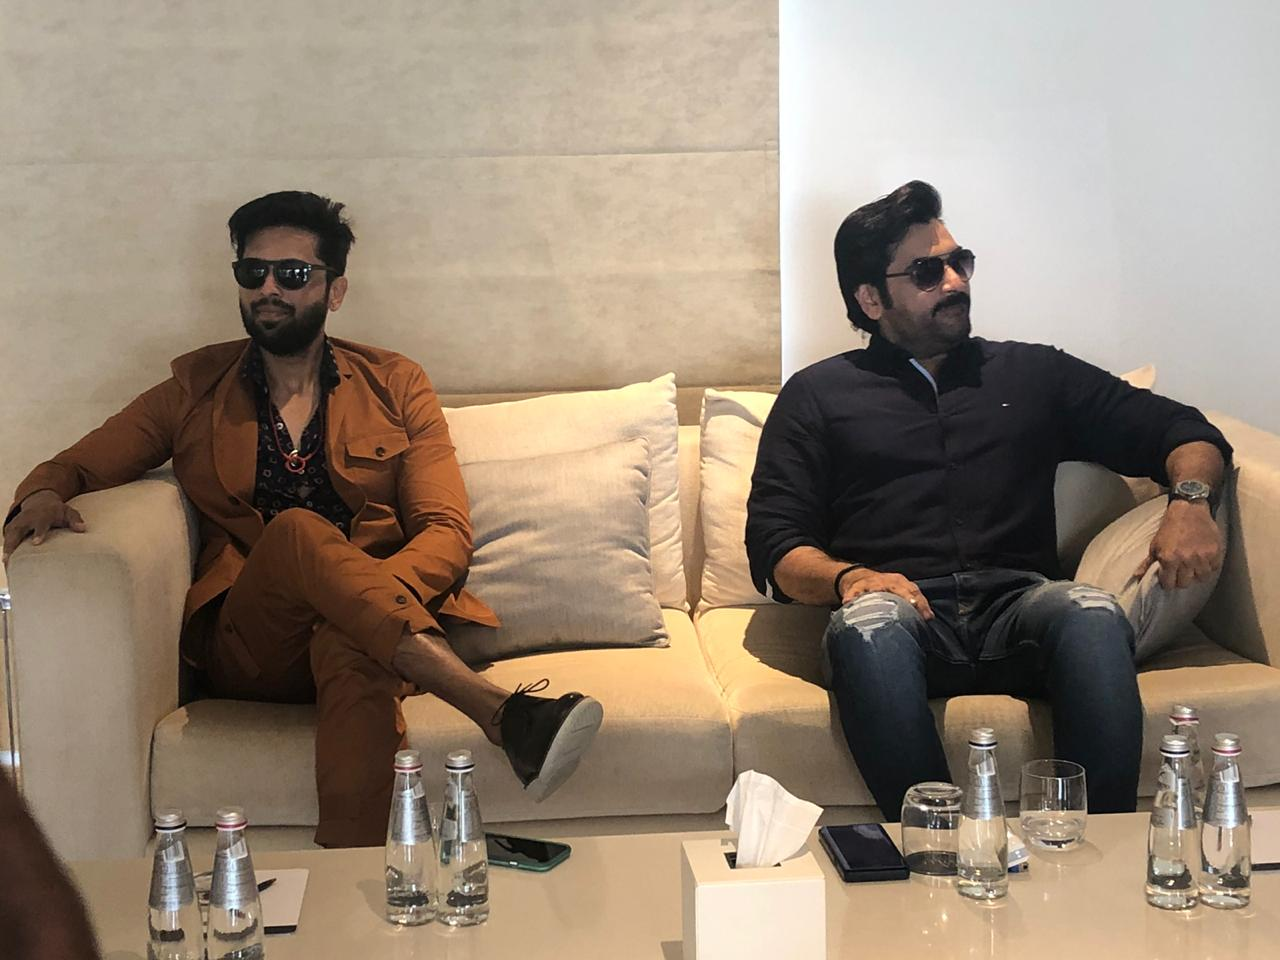 Humayun Saeed and Fahad Mustafa Might Pair Up Again for Jawani Phir Nahi Ani 3